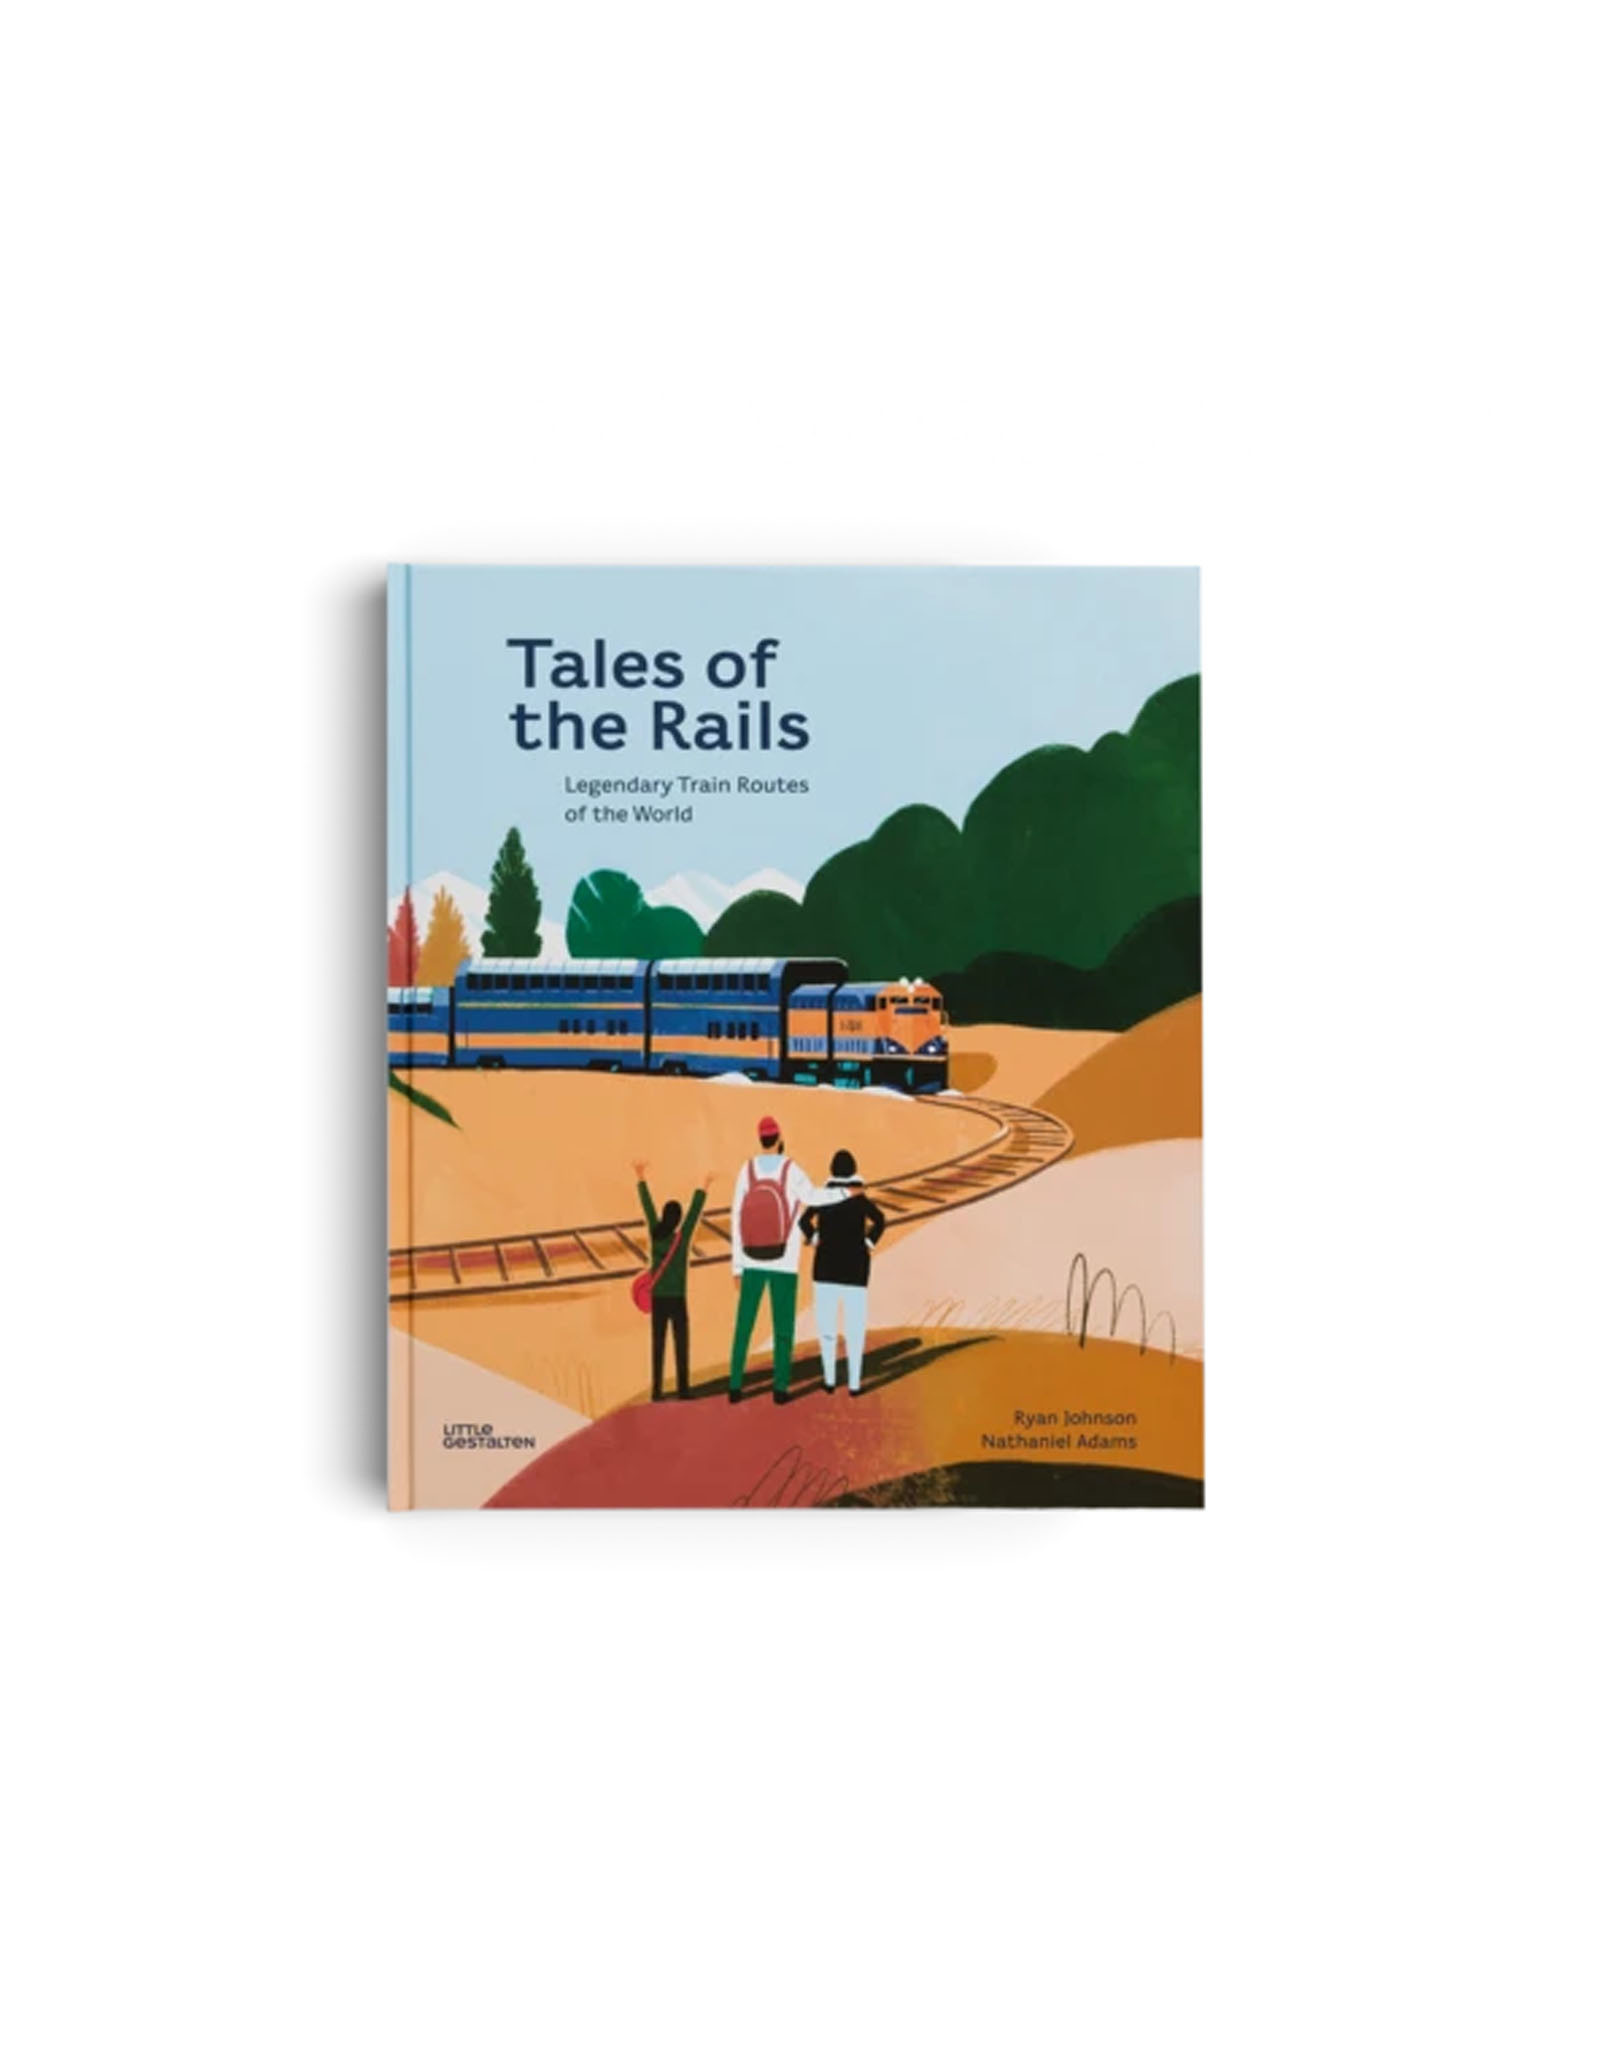 Tales of the Rails: Legendary Train Routes of the World